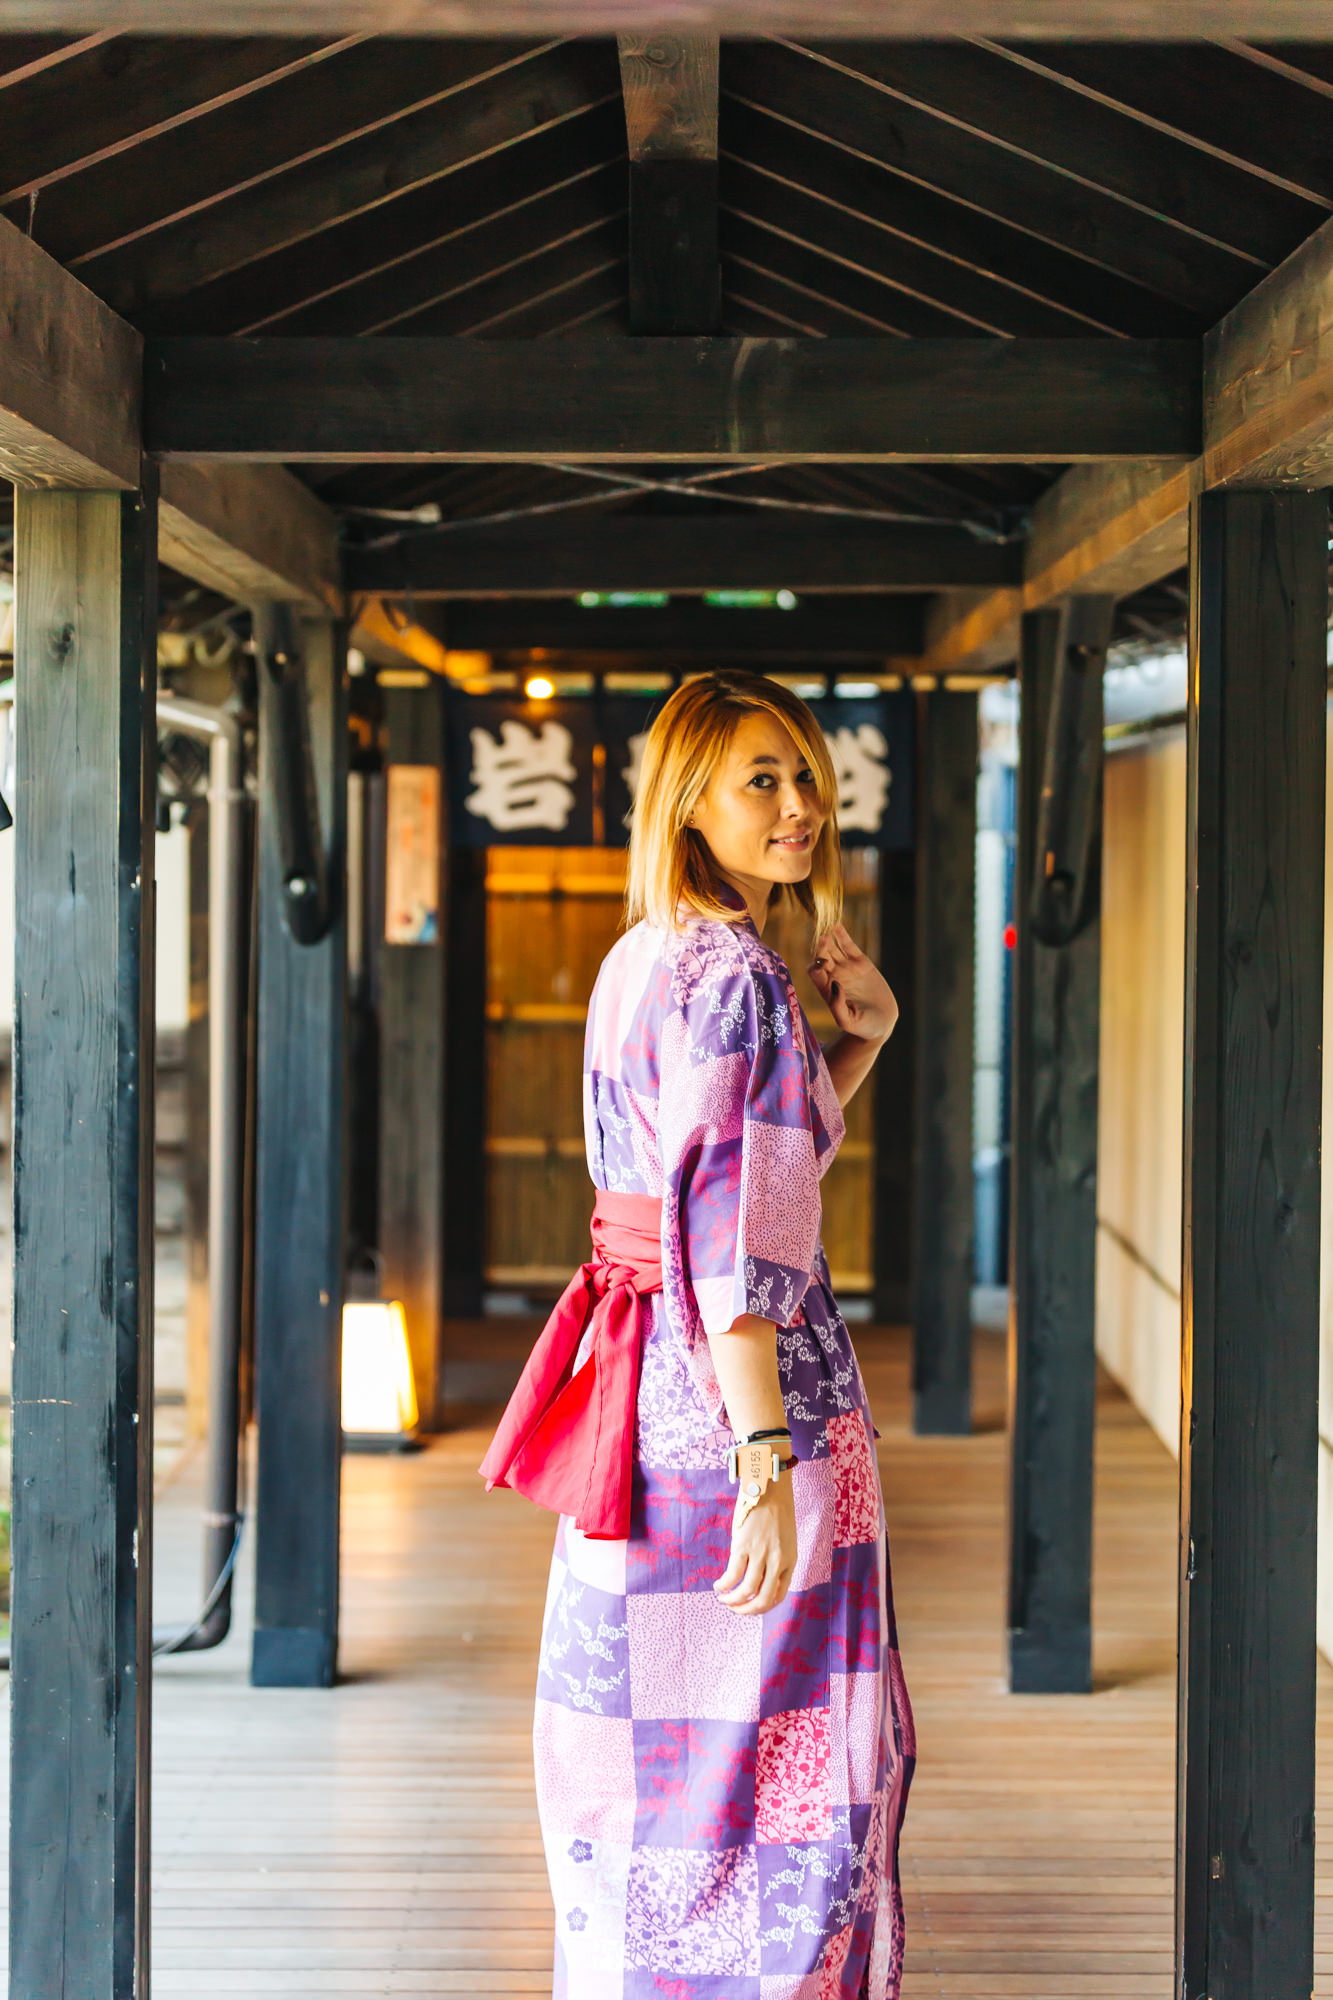 Loved the ambience at Oedo Onsen